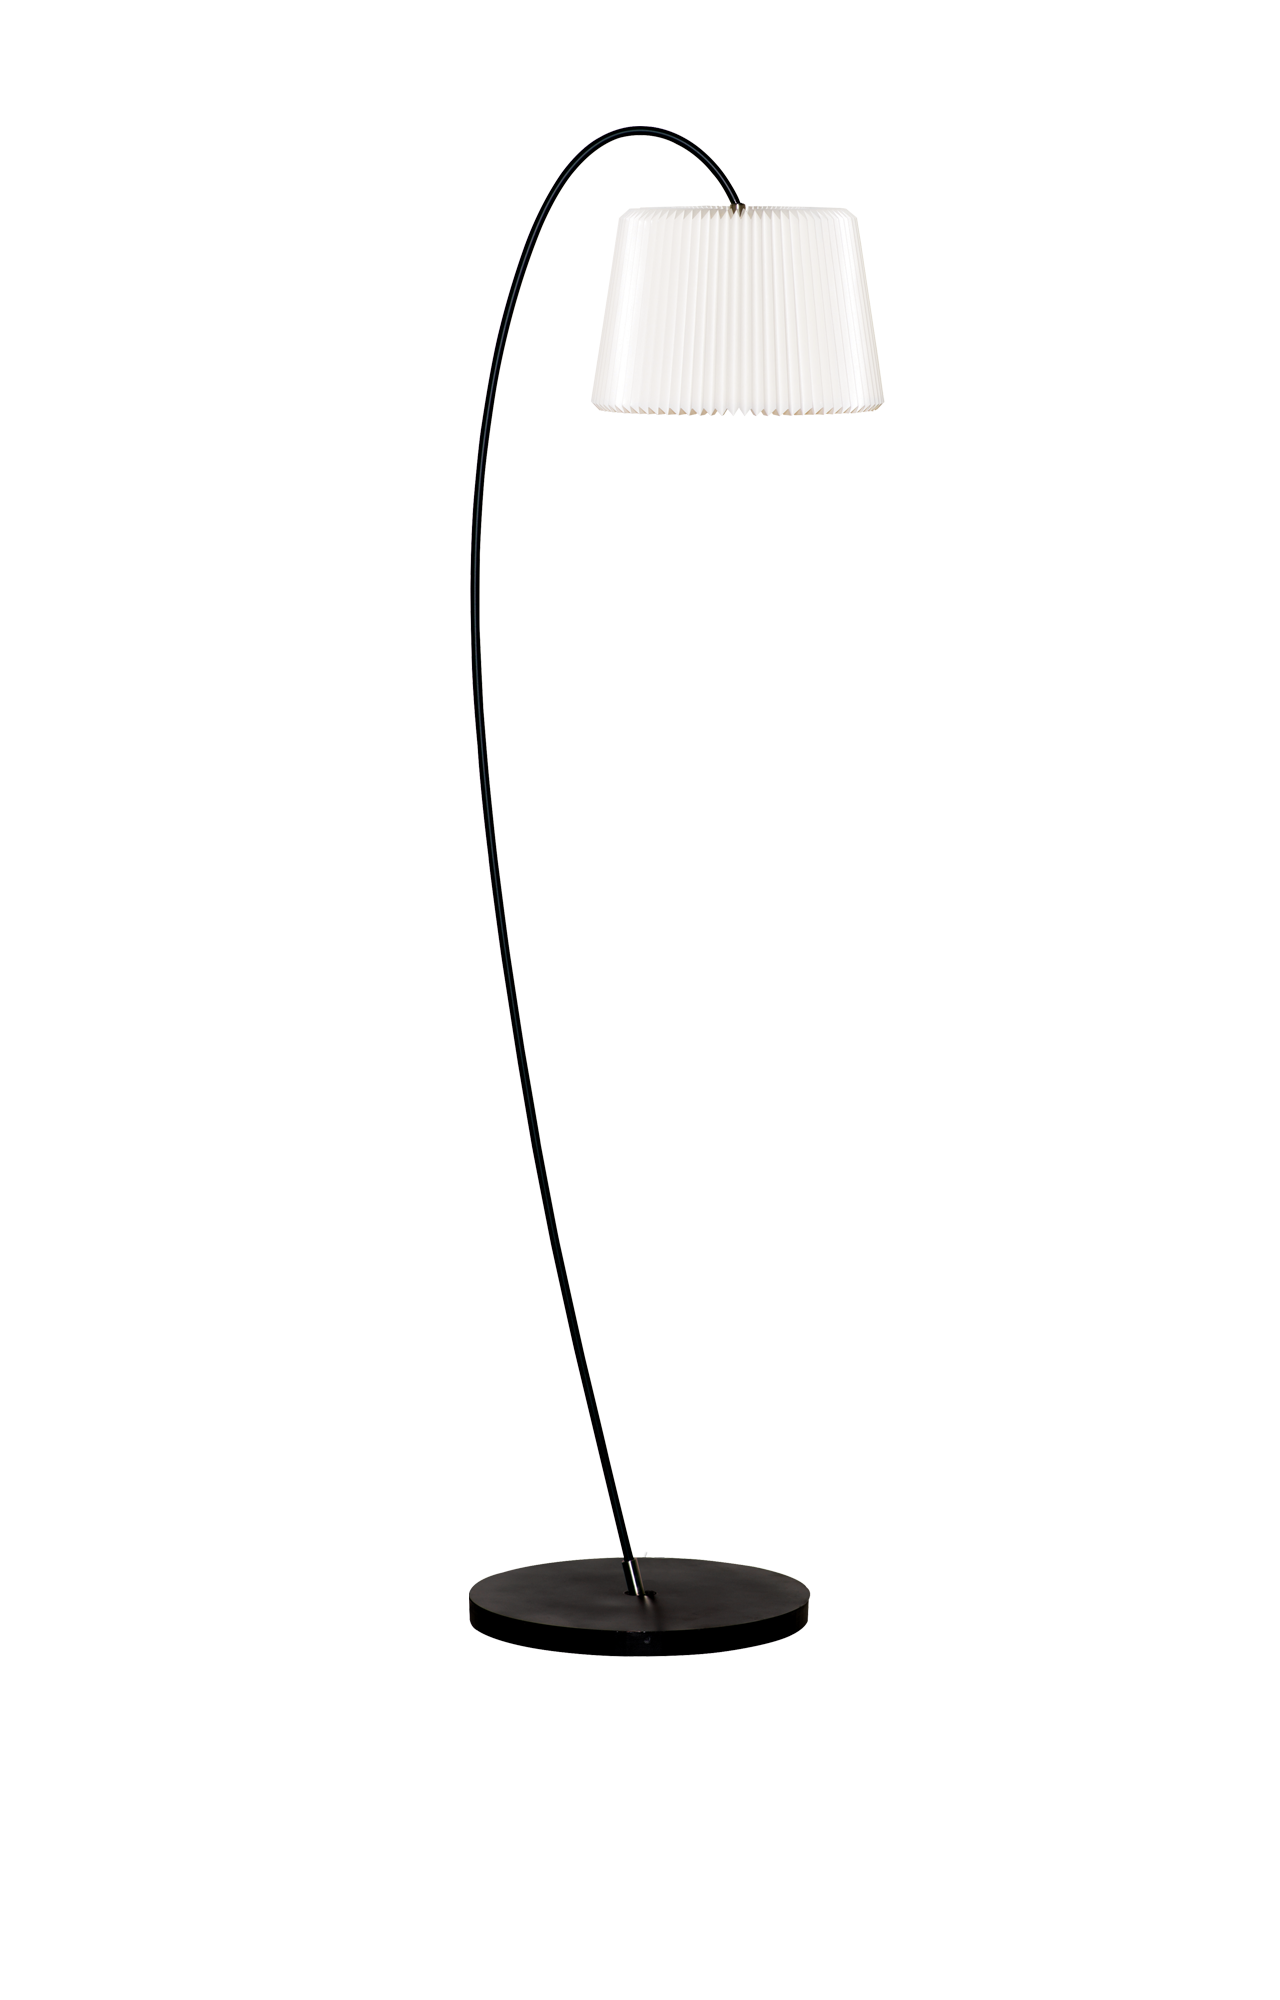 Le Klint Floor Lamp From Series Snowdrop Model 320 Have A Shade Of 35 Cm